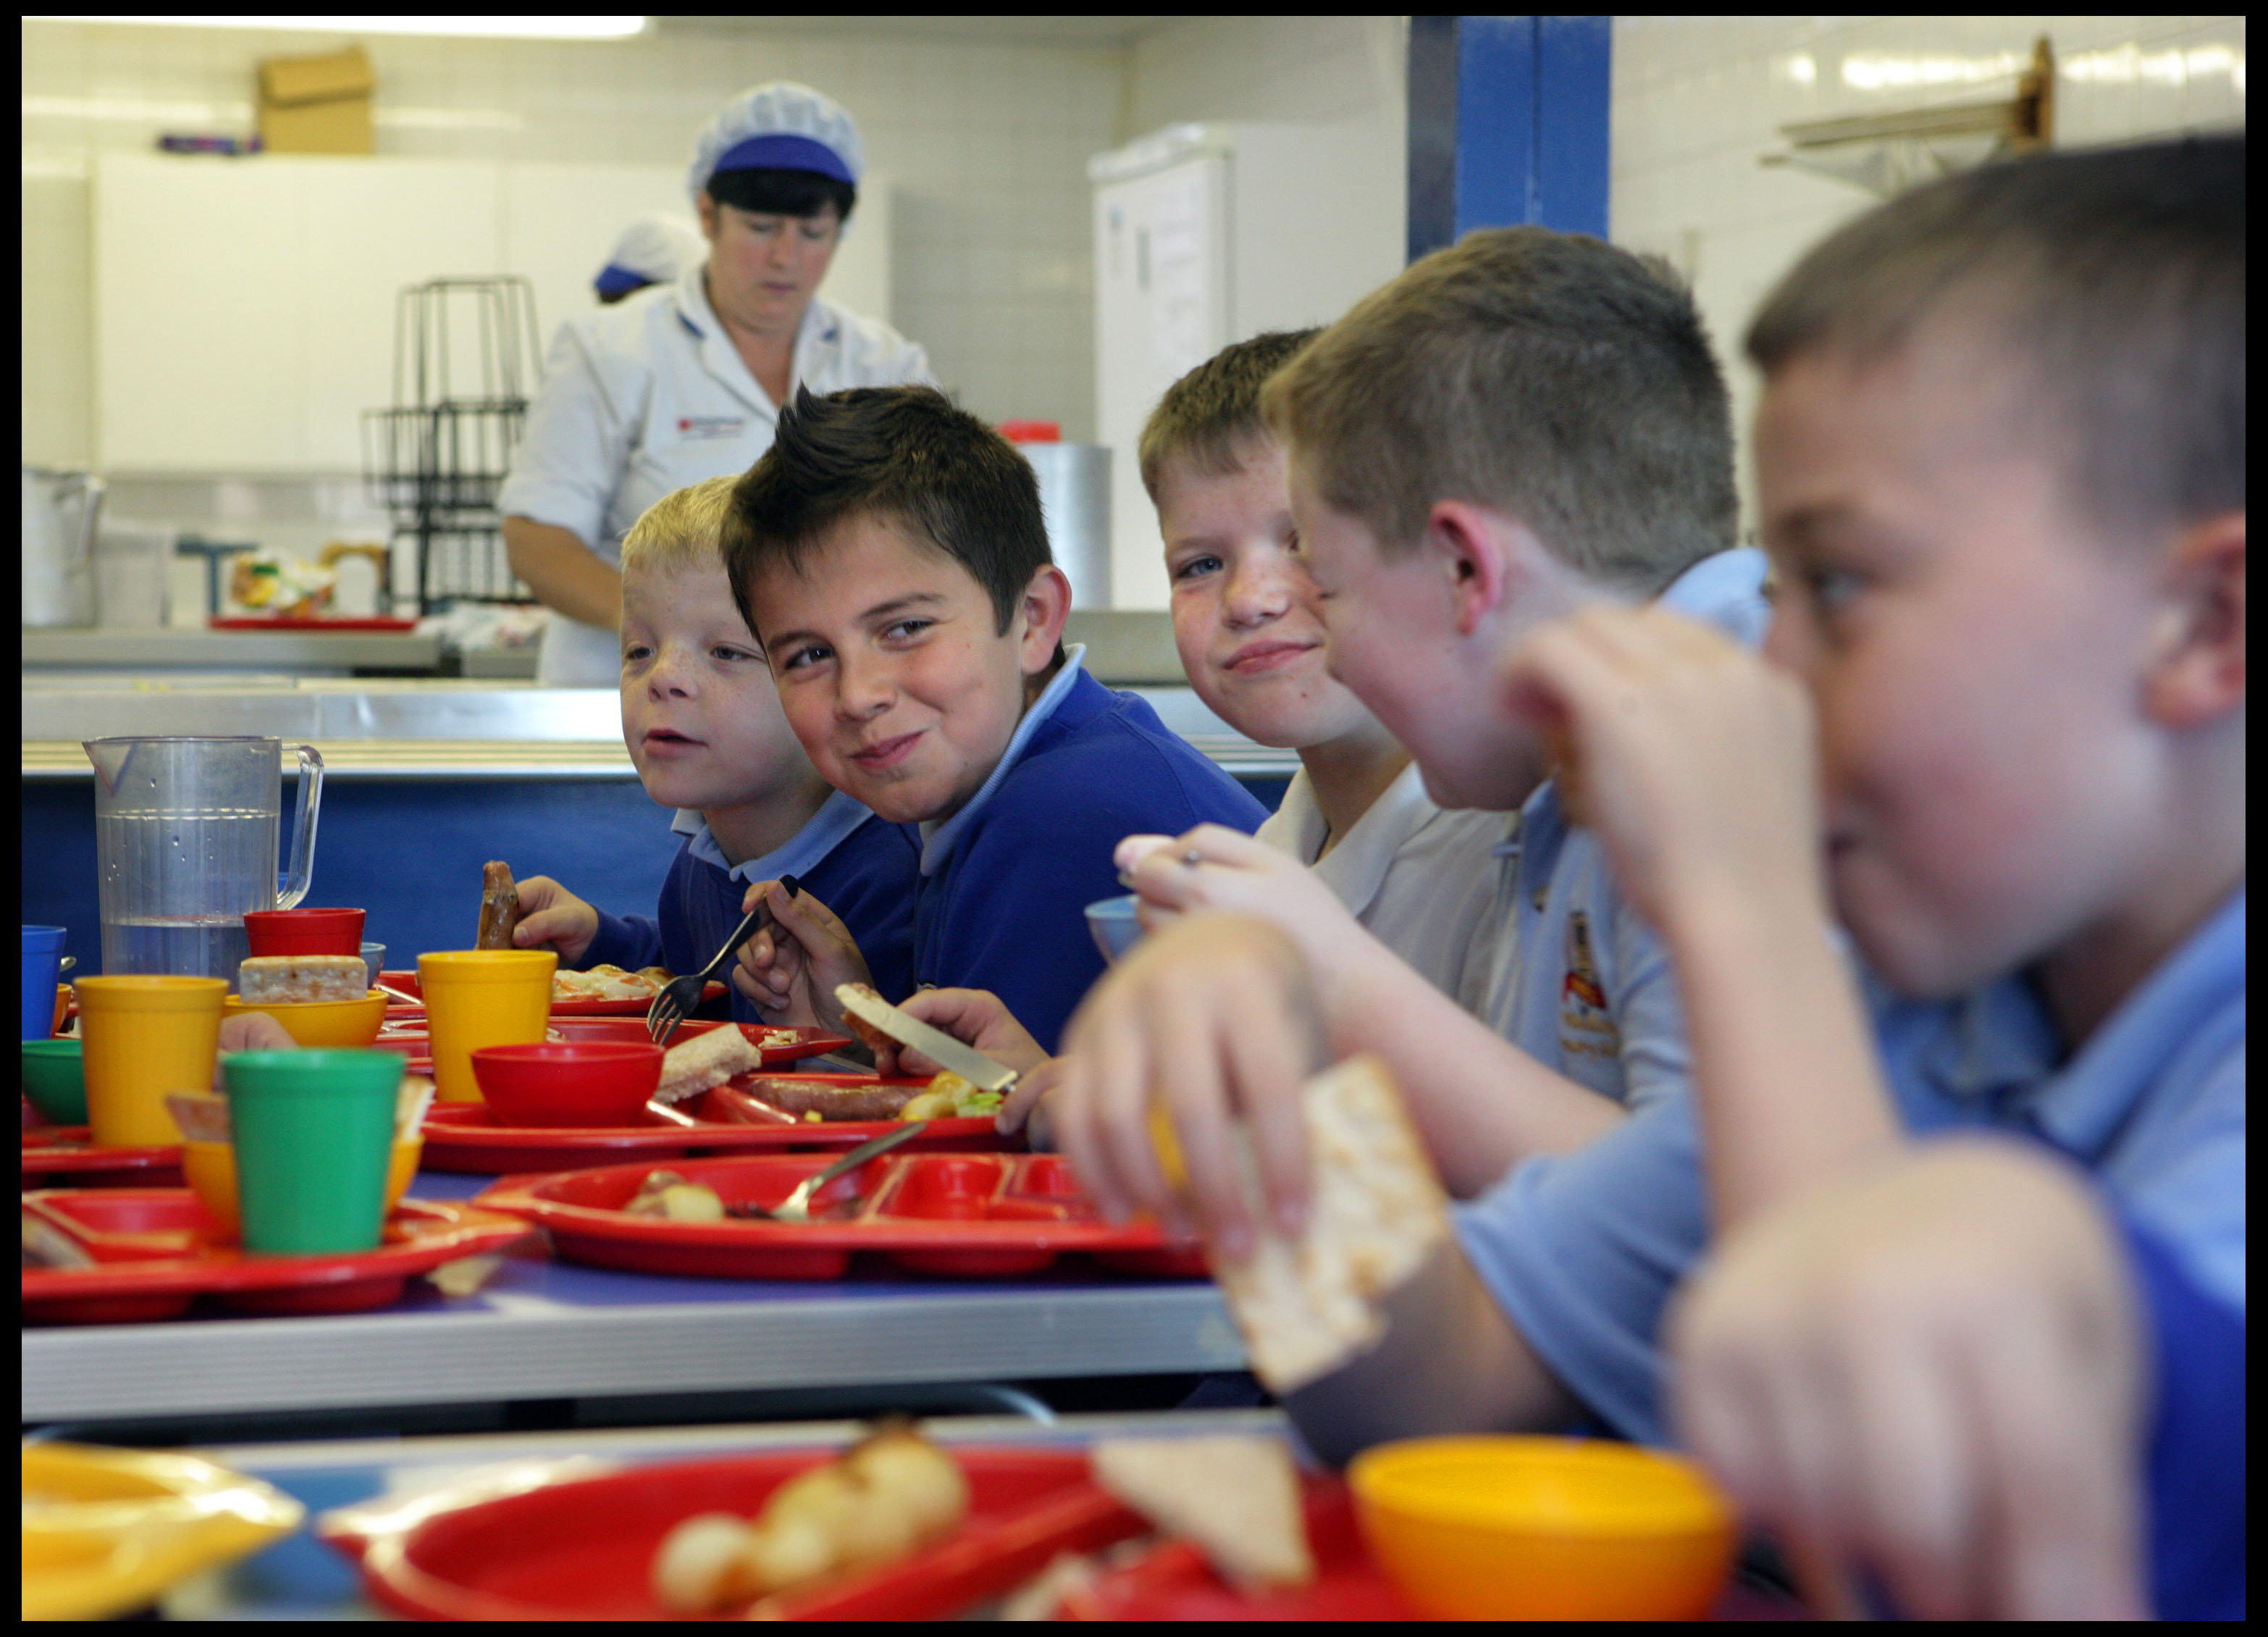 Boys eating school meals